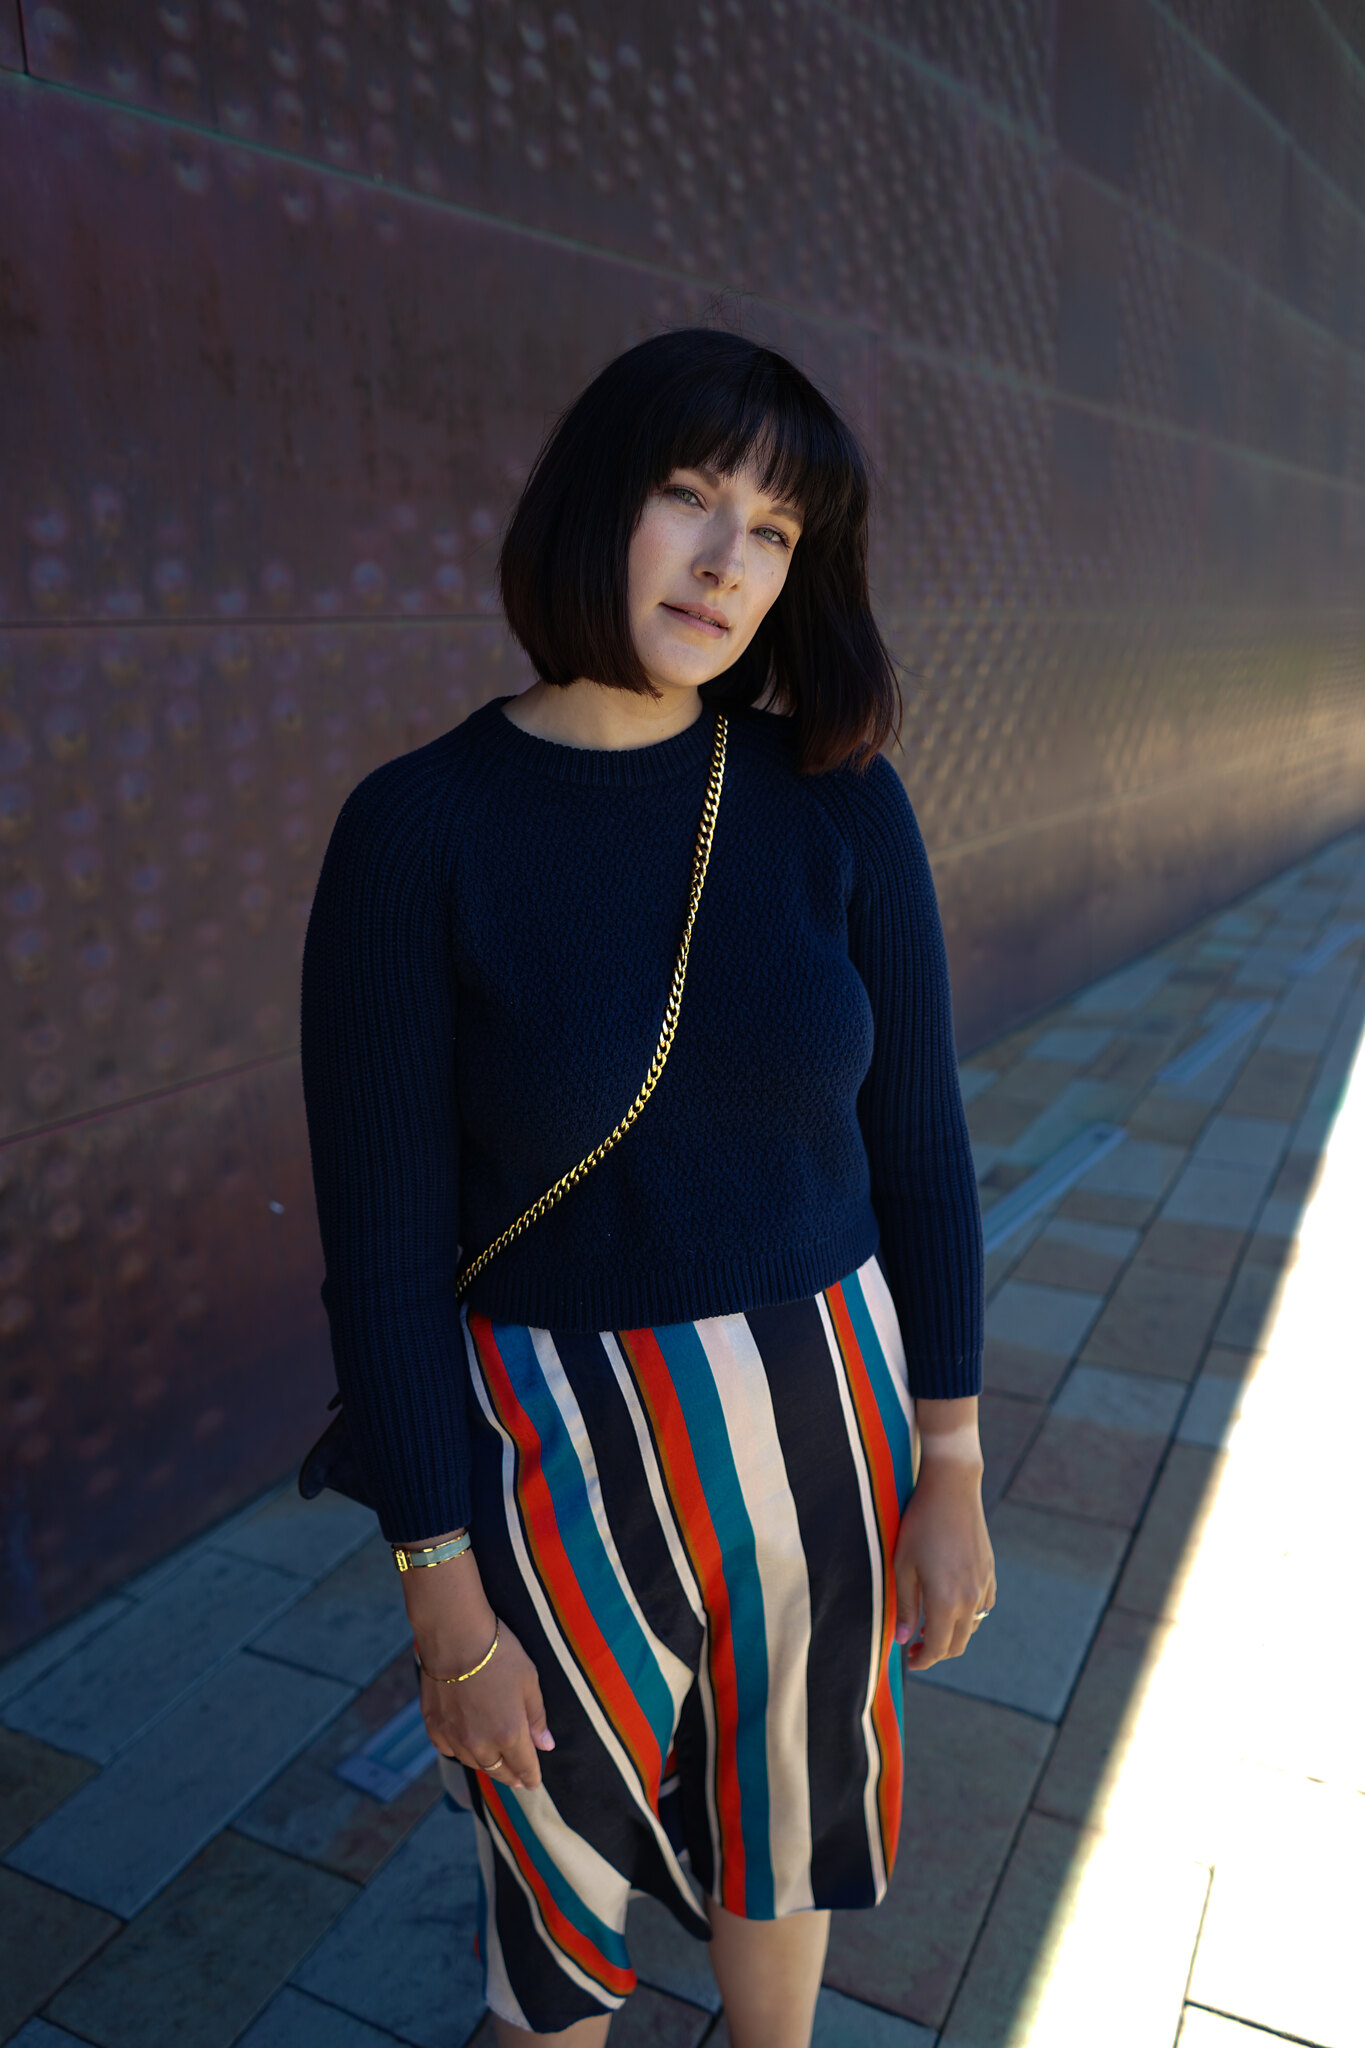 Zara, Midi skirt, stripes, high street fashion, postpartum, mom style, San Francisco, mom life